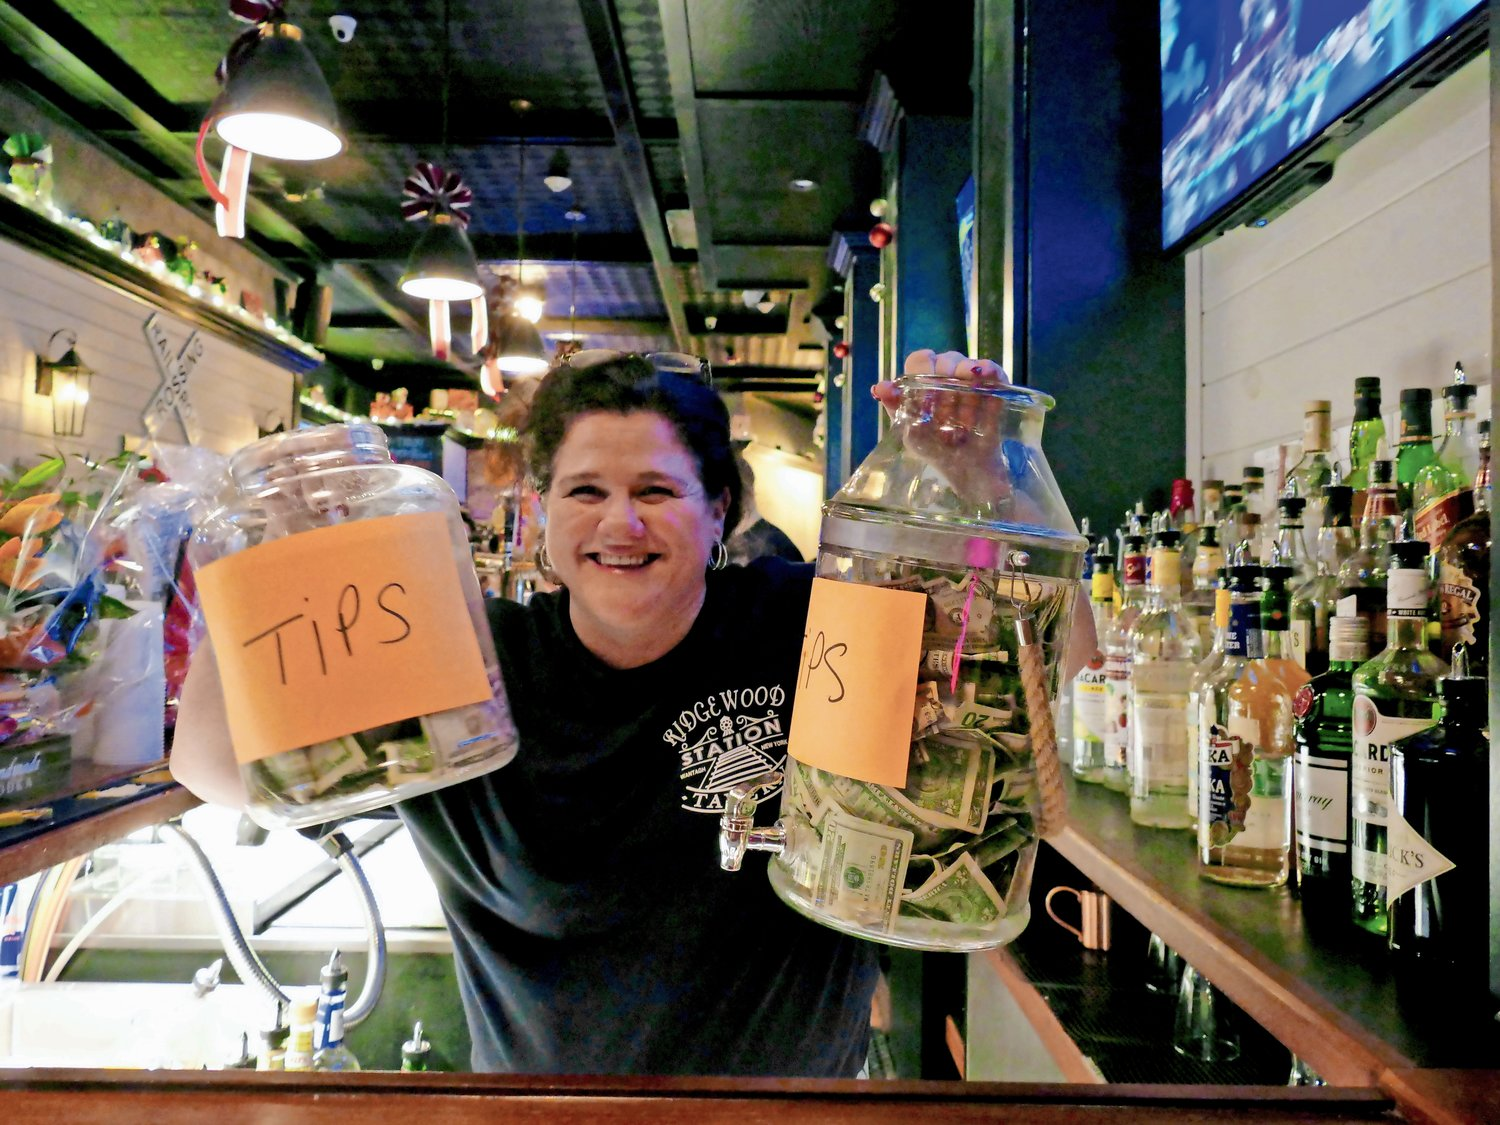 Patrons tipped the bartenders generously during the fundraiser.